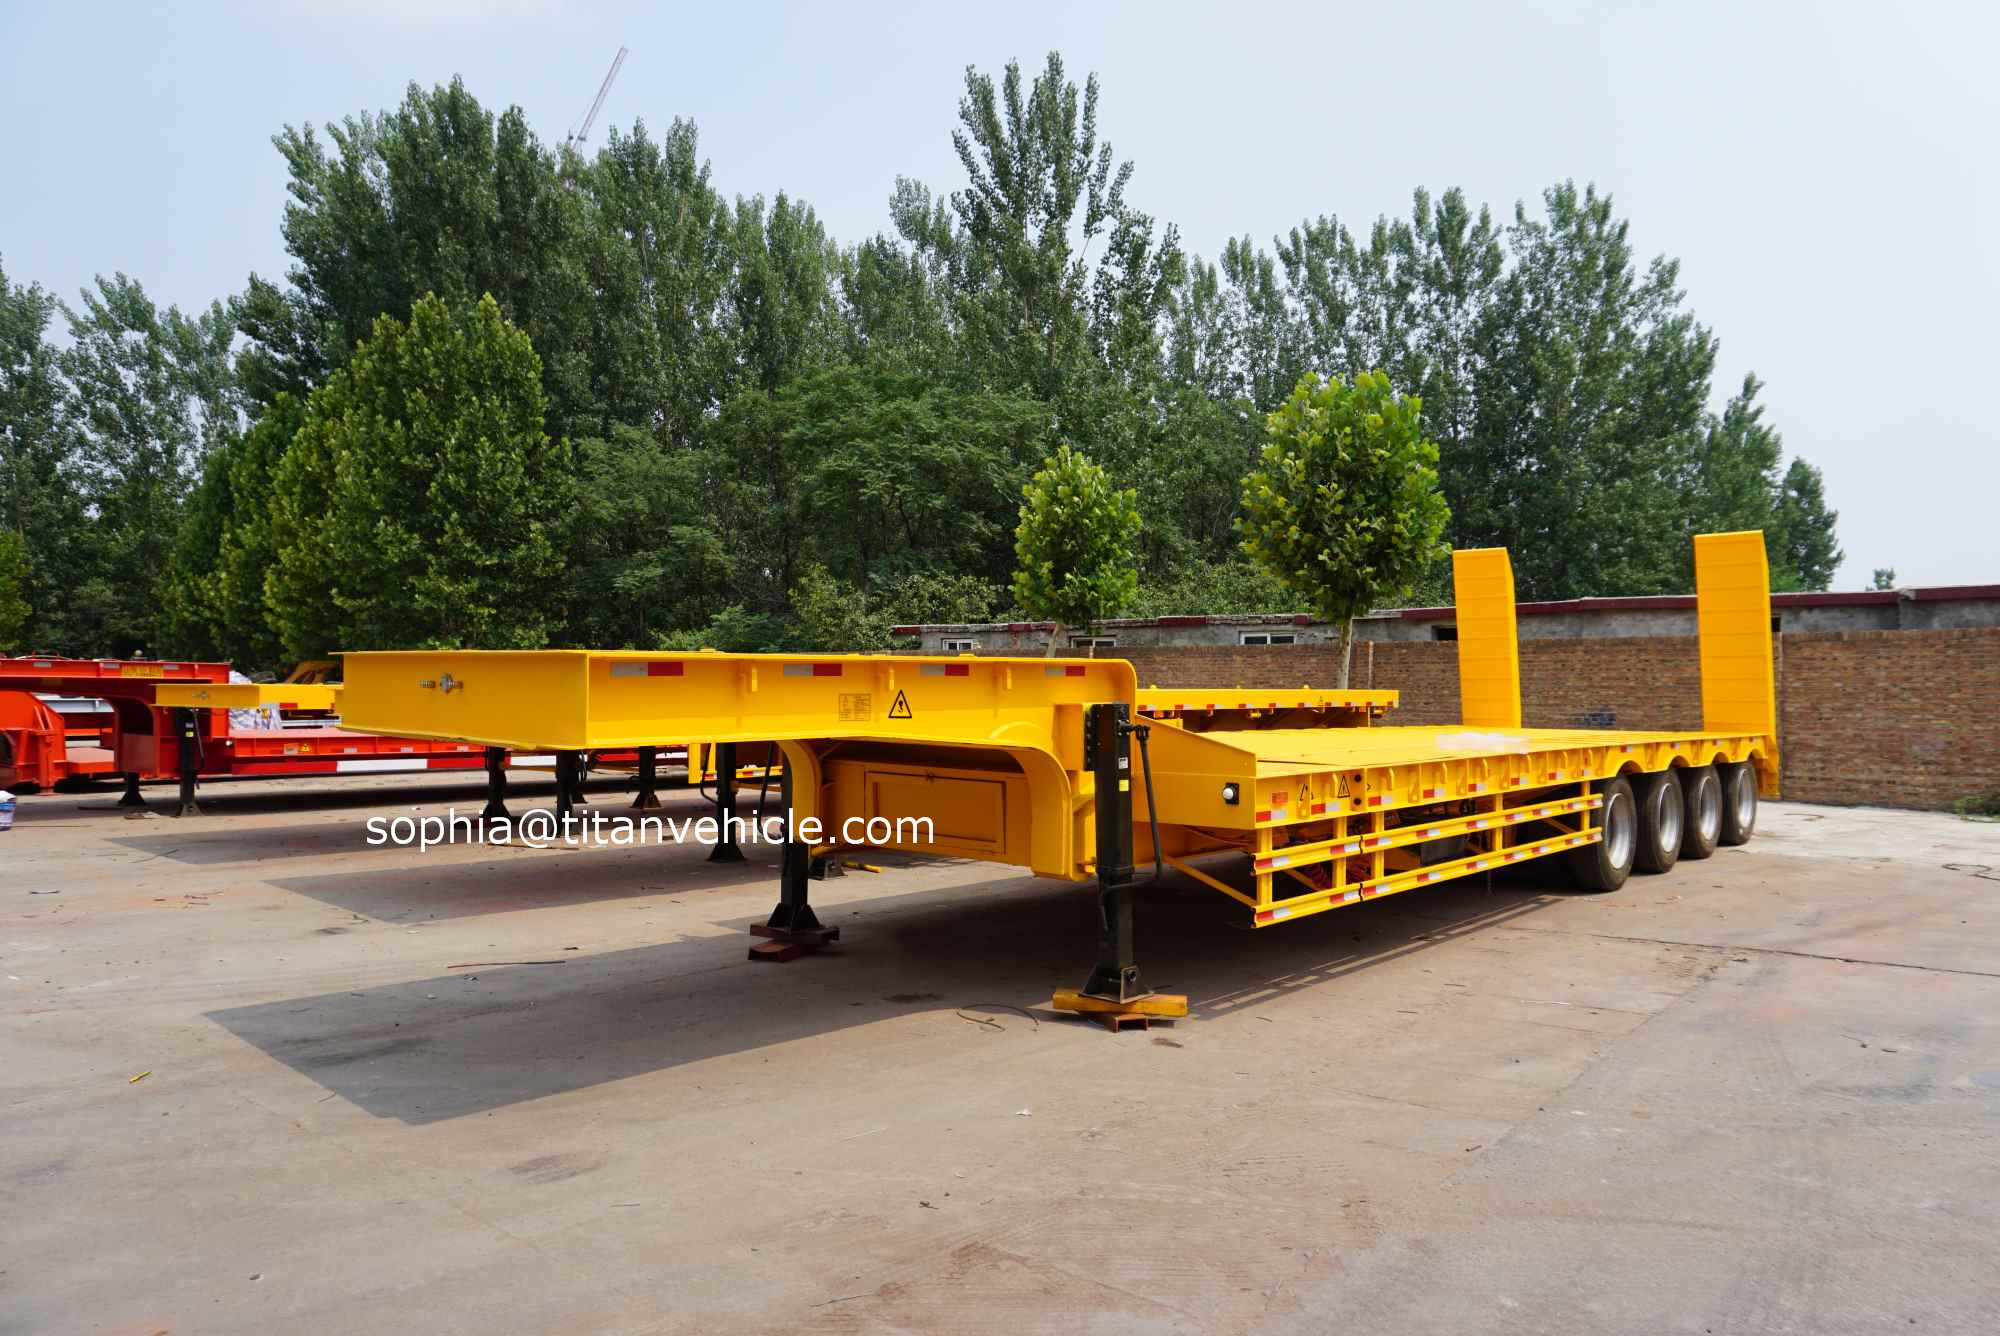 What is the FOB price on your commercial low bed trailer drop deck extendable trailers for sale